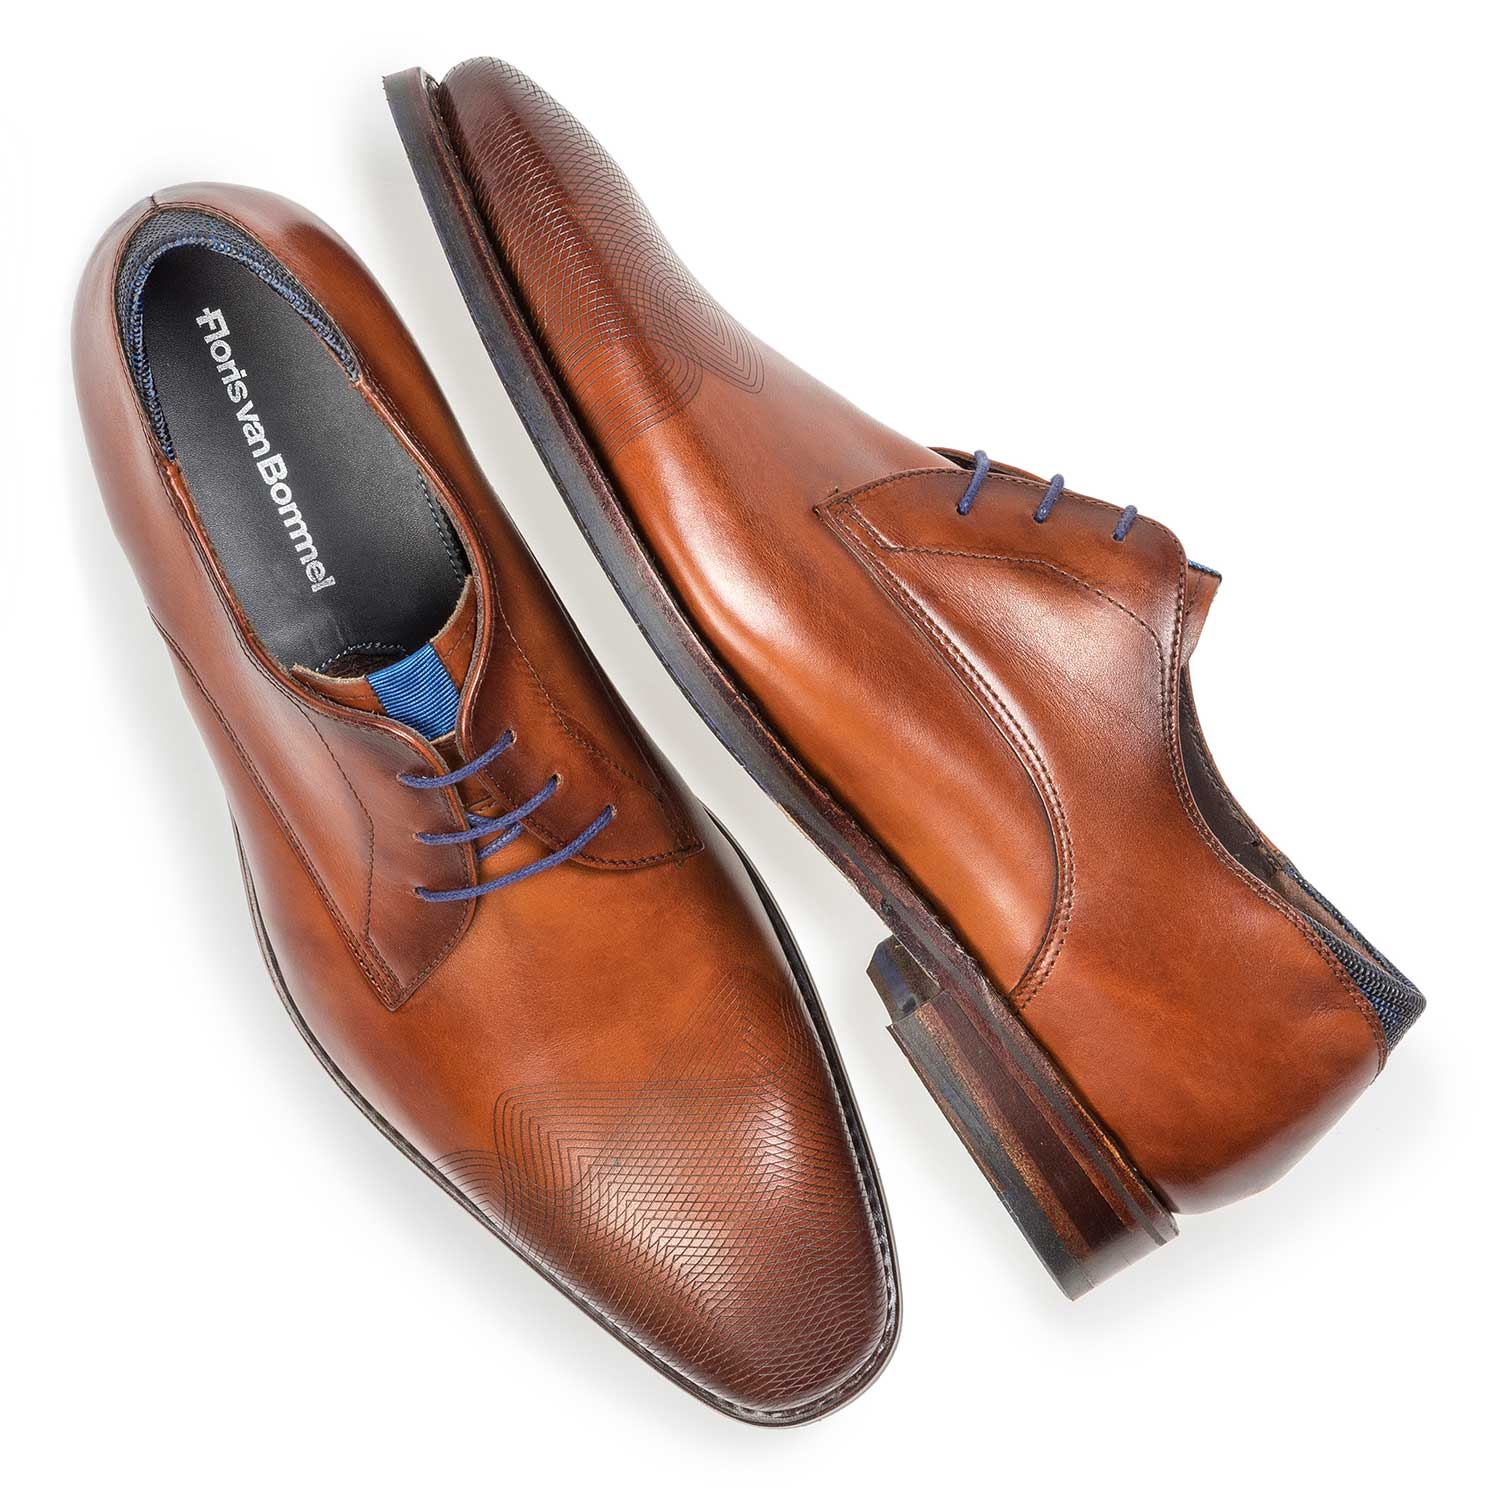 18184/00 - Dark cognac-coloured calf leather lace shoe with laser-cut pattern